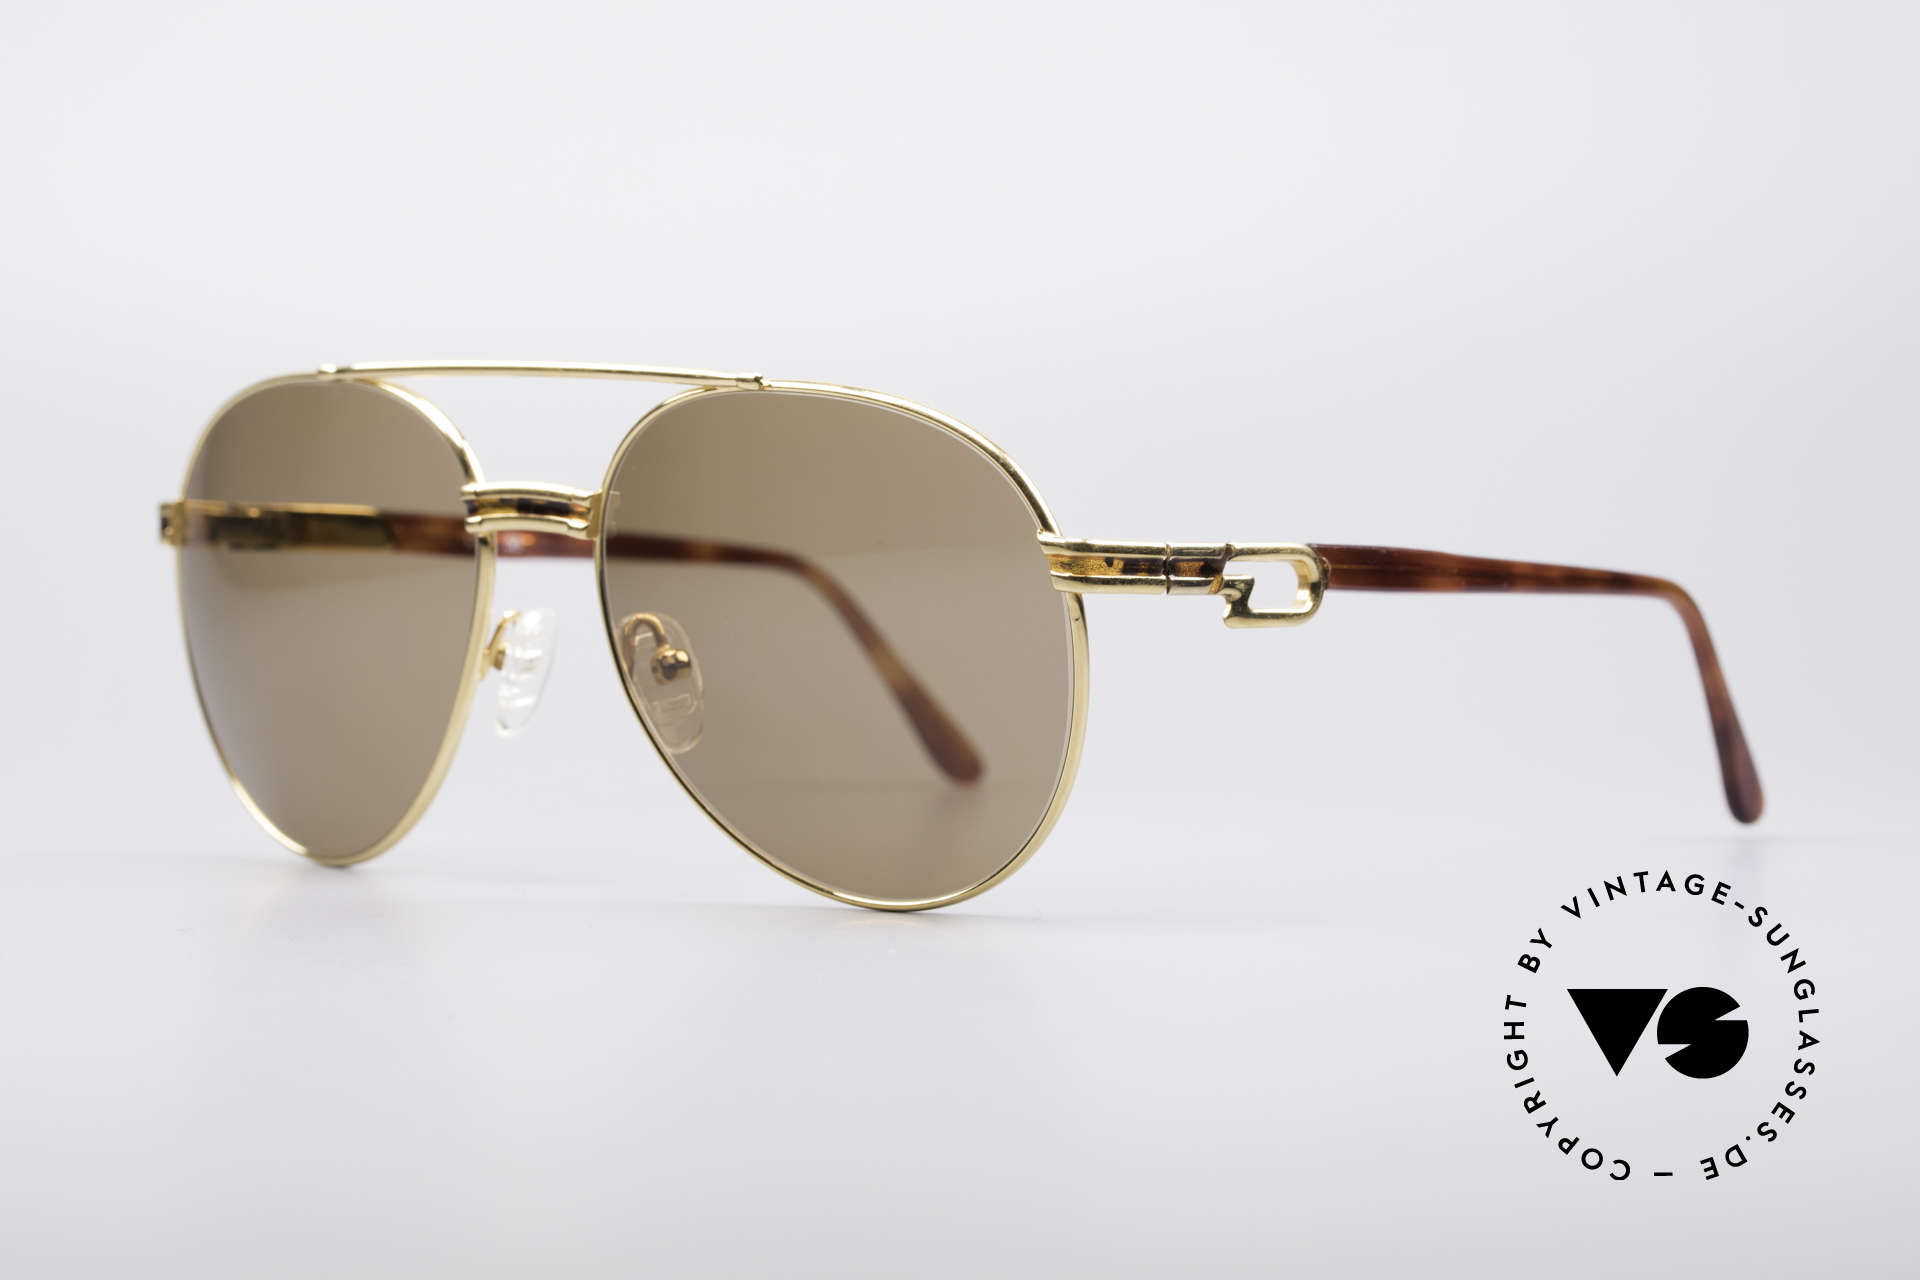 Derapage D2 Vintage No Retro Shades, gold-plated and spring temples (perfect fit), Made for Men